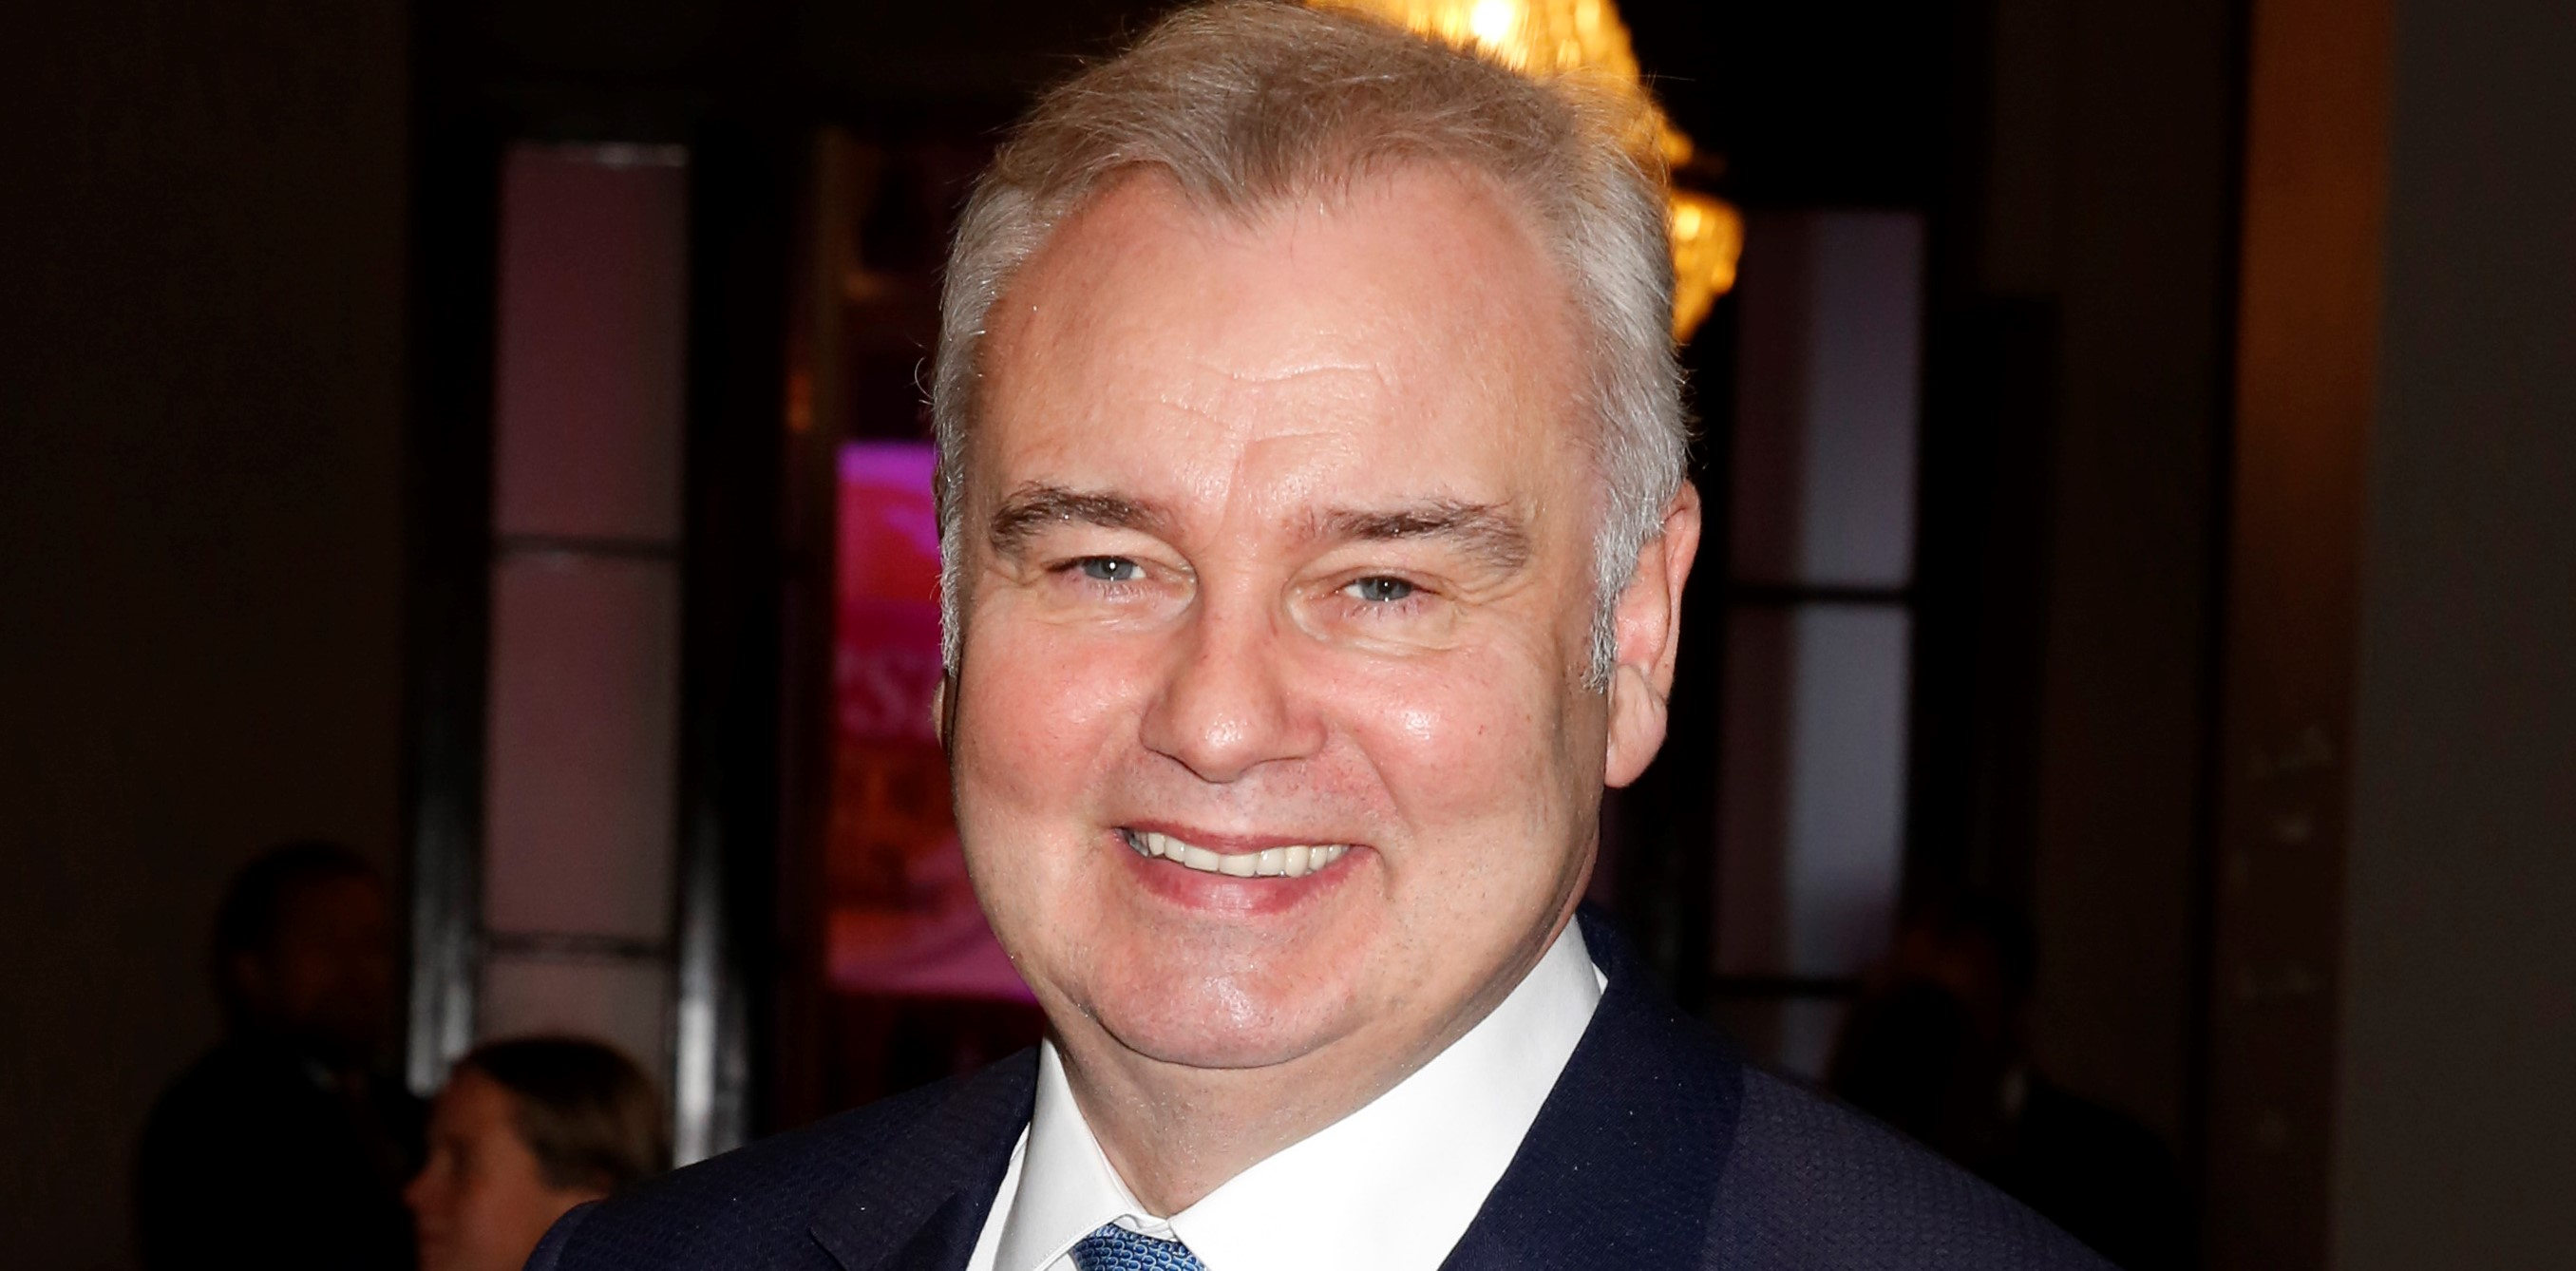 Eamonn Holmes thrills fans with beautiful photo of his daughter